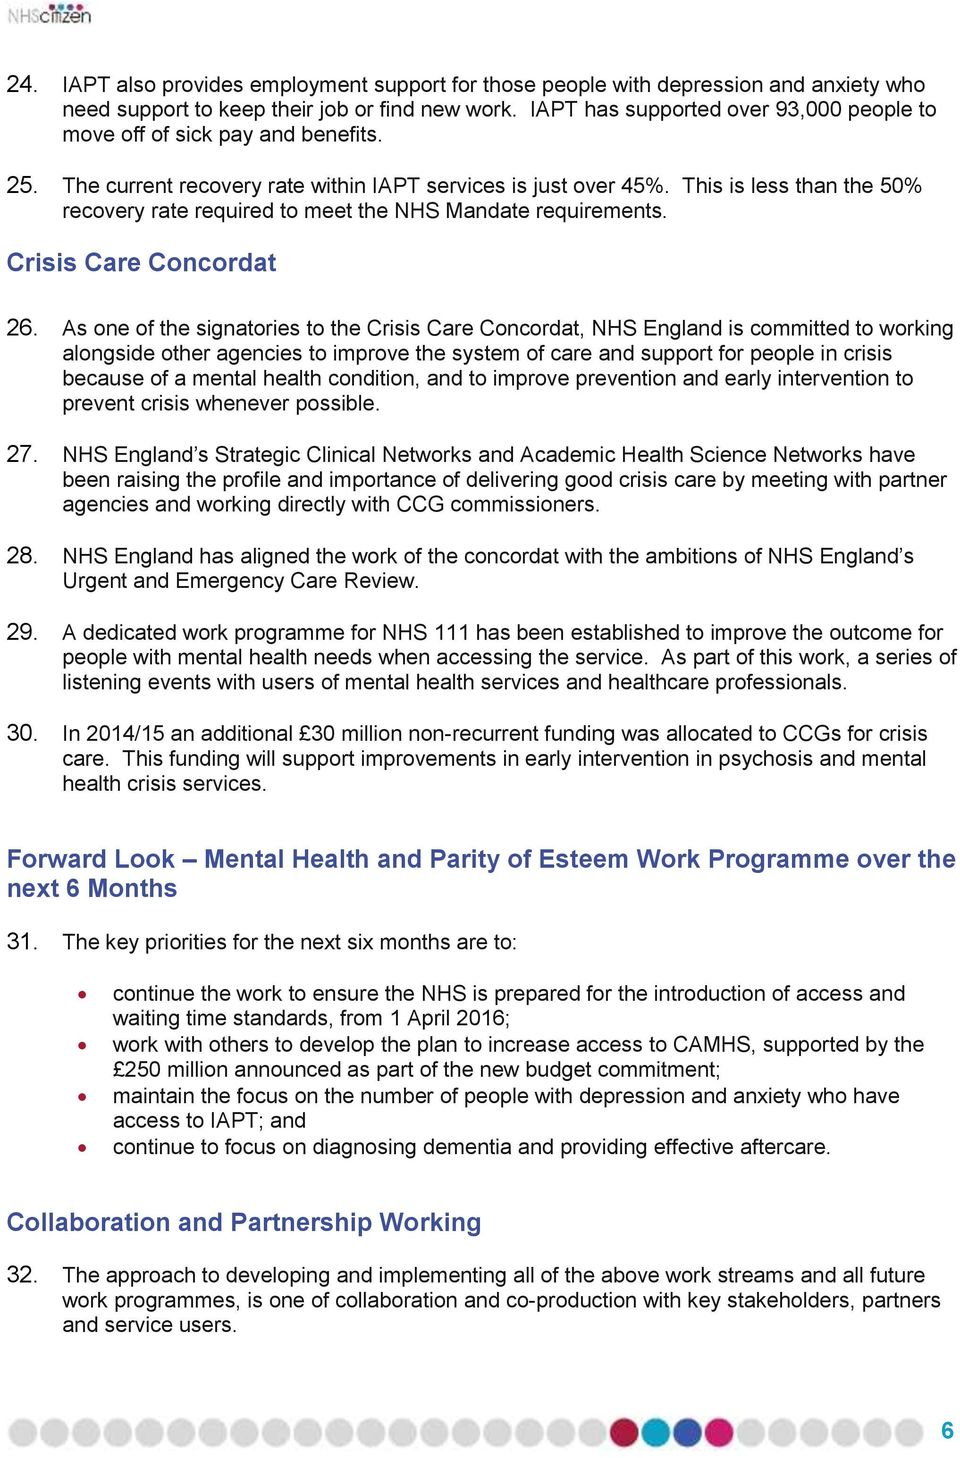 As ne f the signatries t the Crisis Care Cncrdat, NHS England is cmmitted t wrking alngside ther agencies t imprve the system f care and supprt fr peple in crisis because f a mental health cnditin,